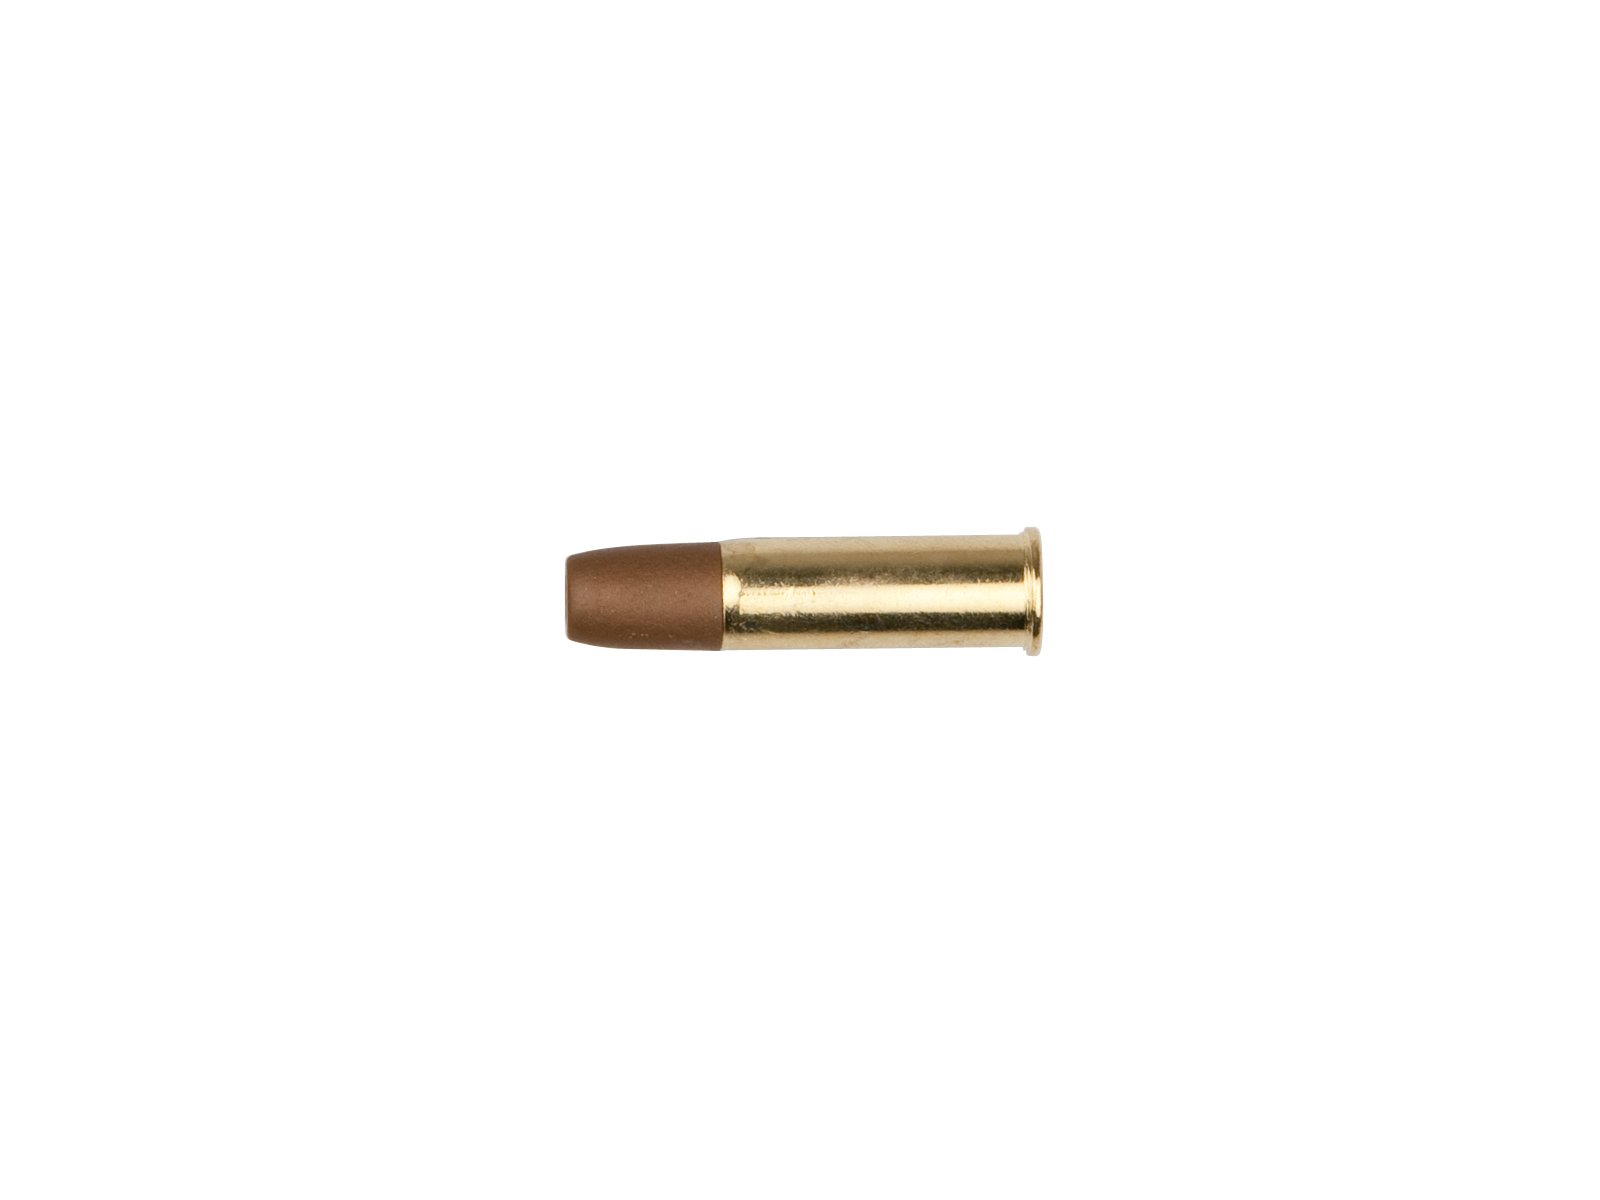 ASG Cartridge 4.5mm/.177 for Dan Wesson, Box of 25 Pcs by ASG